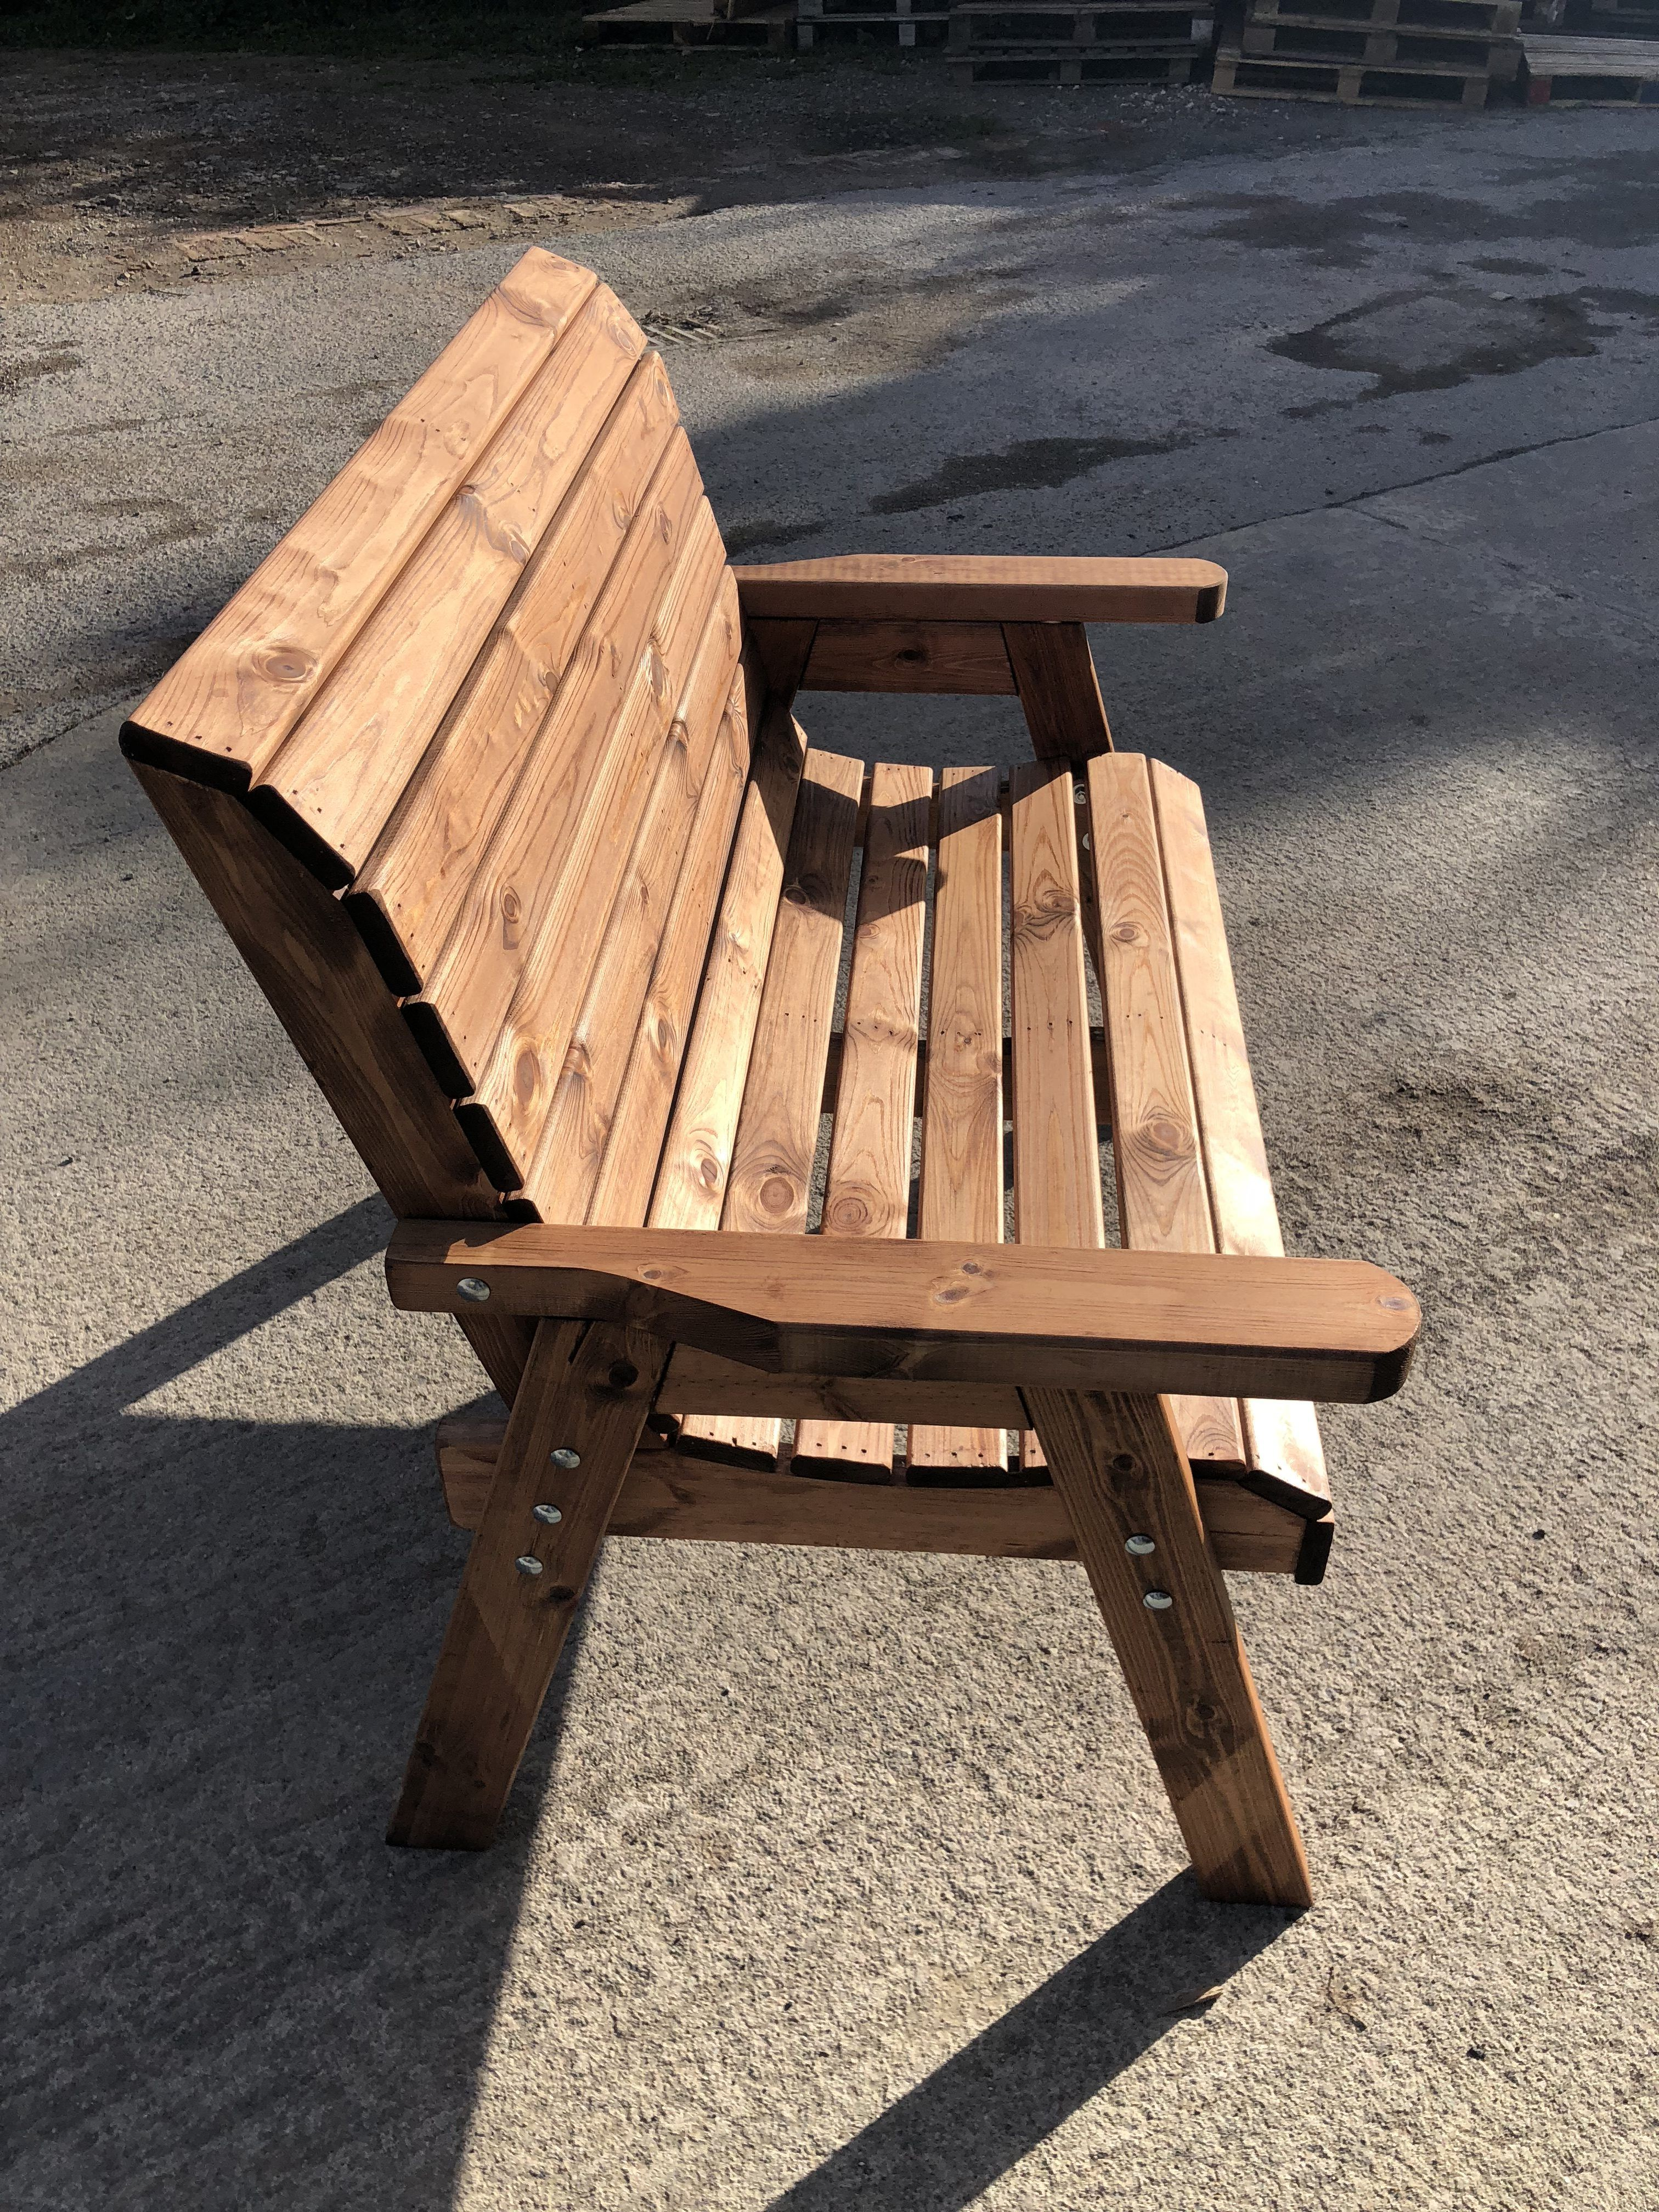 Imperial Bench 4ft 2 Seater Sale Tanilised Pressure Treated Garden Furniture Sale Wooden Garden Benches Wooden Garden Furniture